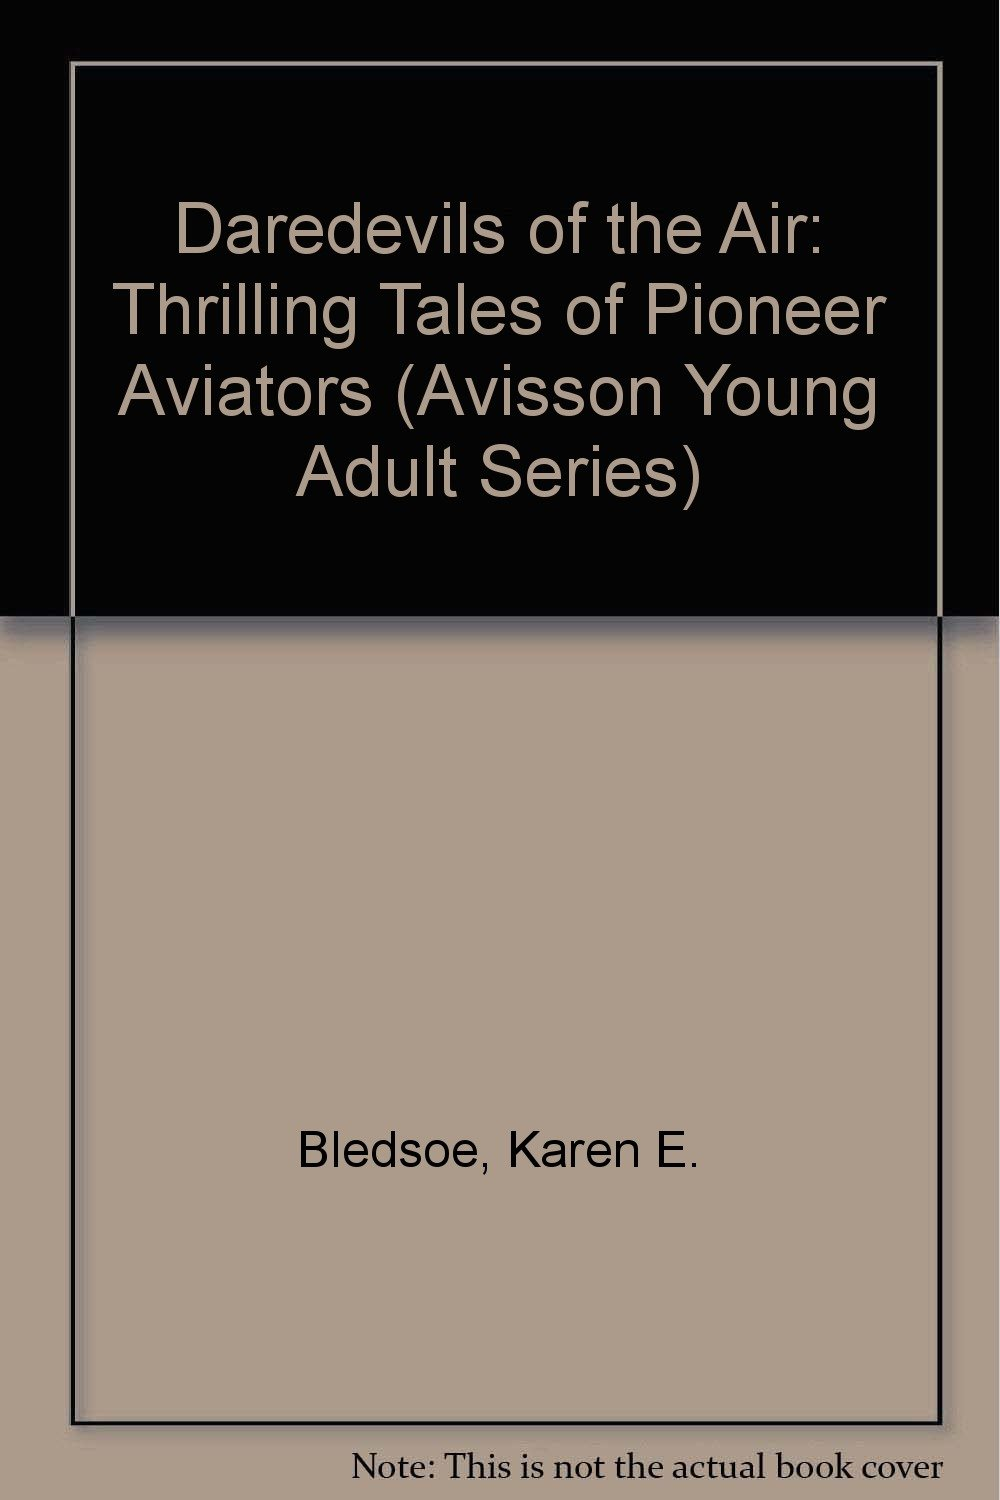 Daredevils of the Air: Thrilling Tales of Pioneer Aviators (Avisson Young Adult Series) PDF